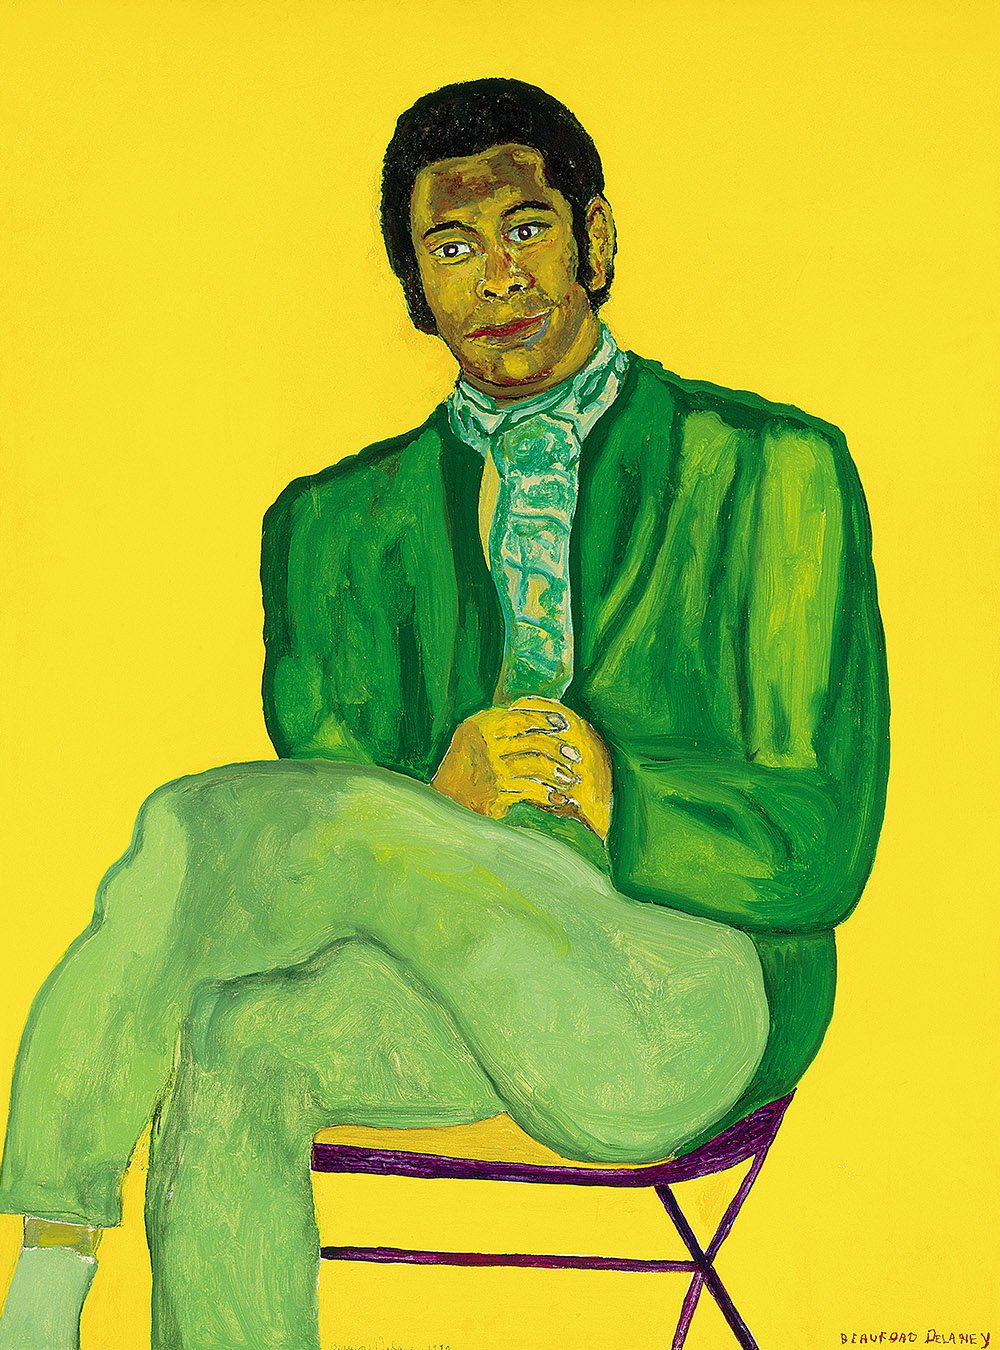 A portrait of a black man sitting on a folding chair, his hands clasped on his lap, legs crossed, he wears a green suit with a green scarf tucked neatly in place of a tie, the background field of vibrant yellow reflects onto the highlight of his face